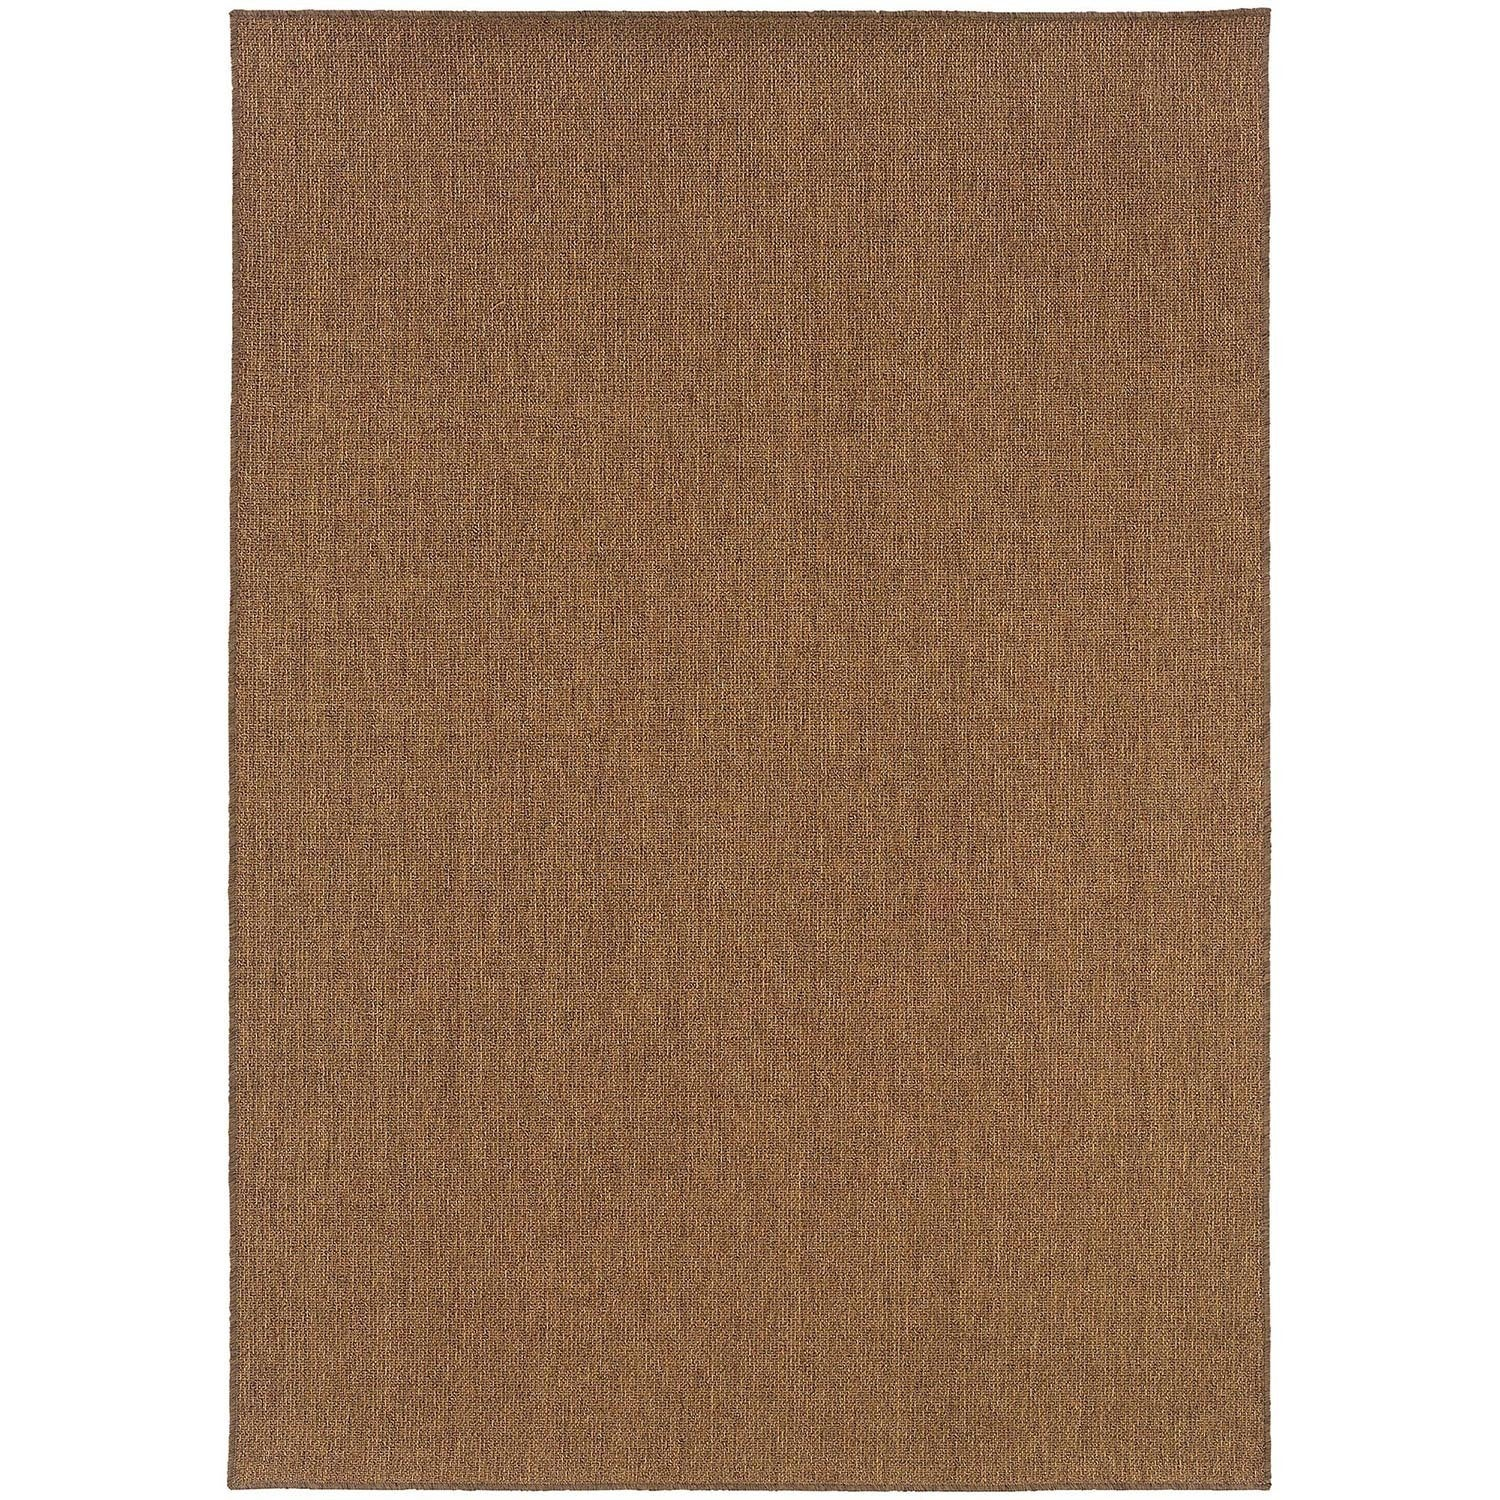 Stylehaven Woven Solid Tan Indoor Outdoor Area Rug